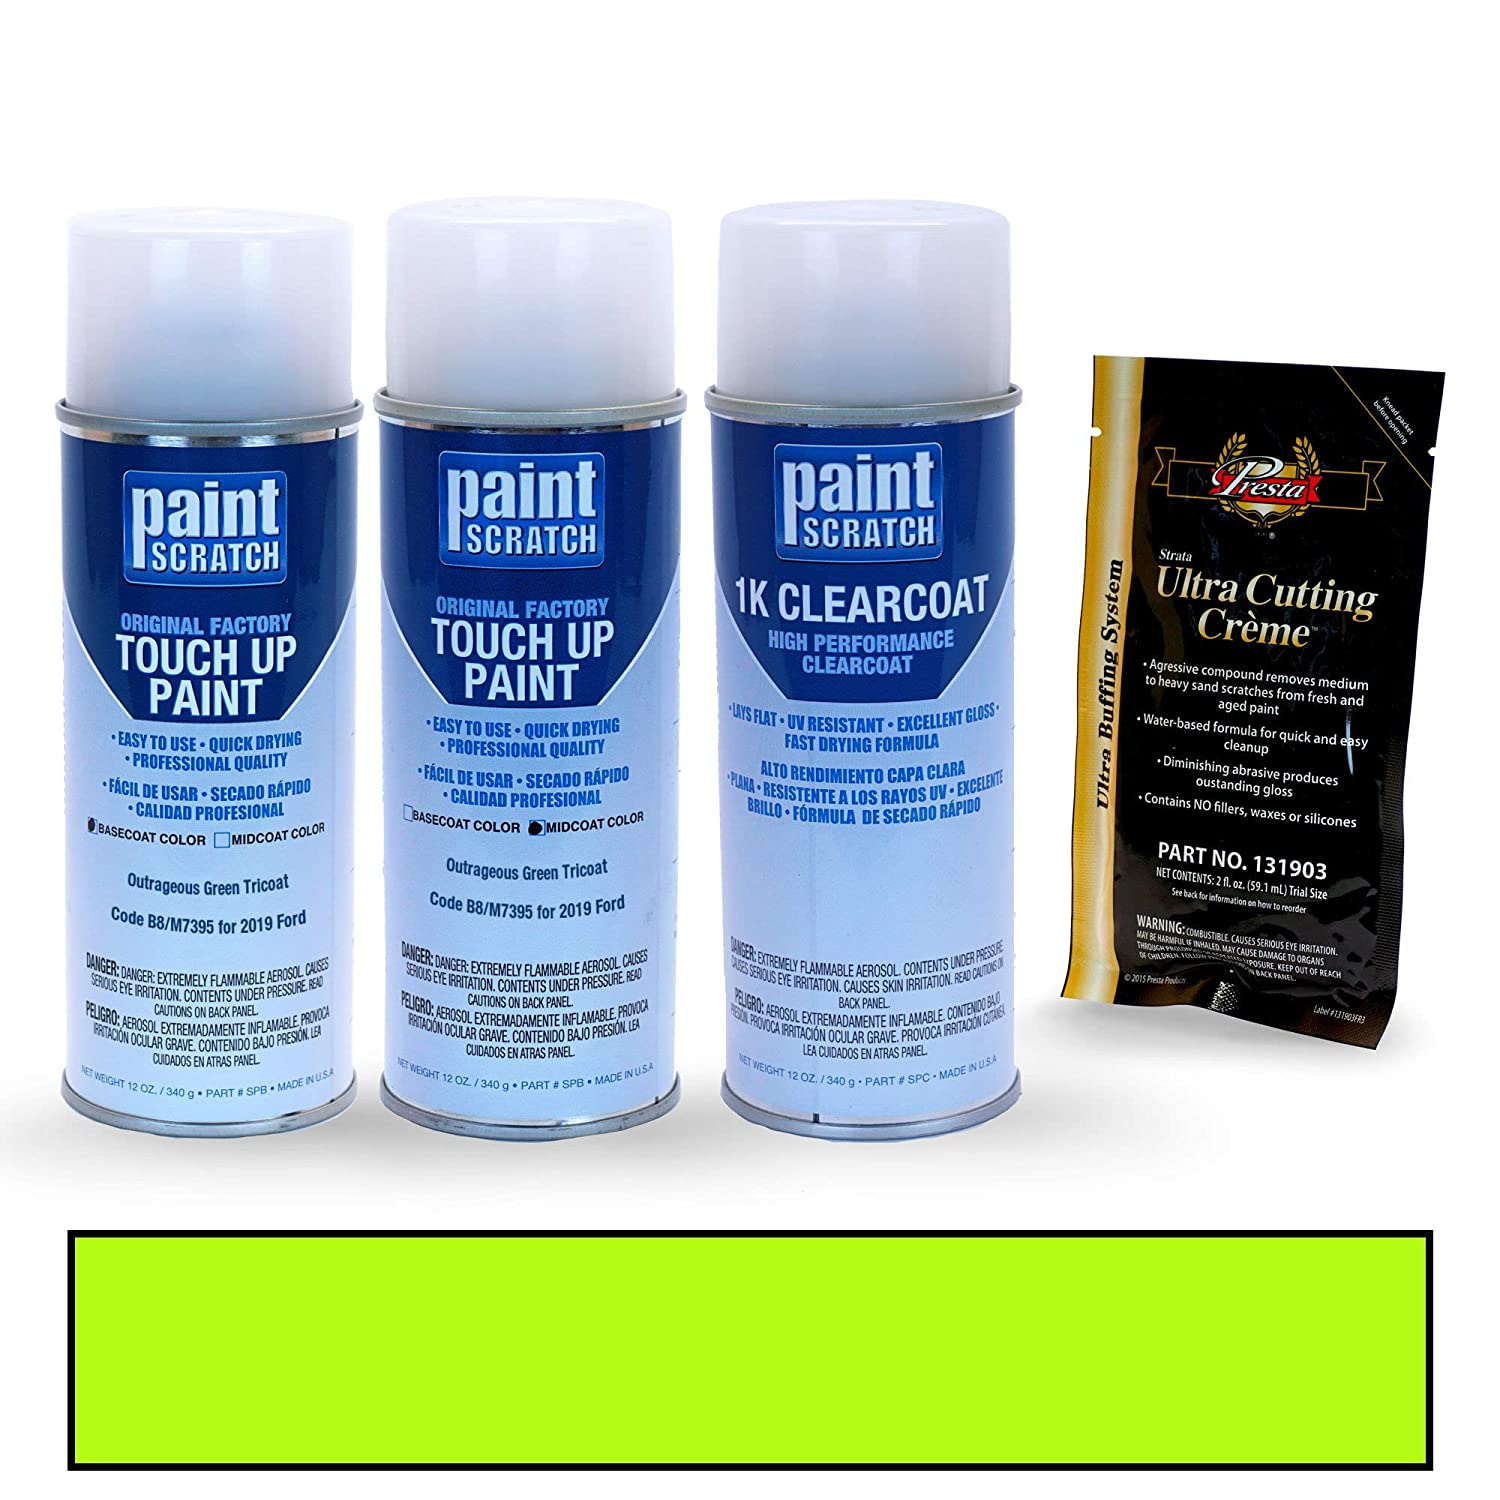 Amazon.com: PAINTSCRATCH Deep Impact Blue Metallic J4/M7289 for 2019 Ford Fiesta - Touch Up Paint Spray Can Kit - Original Factory OEM Automotive Paint ...